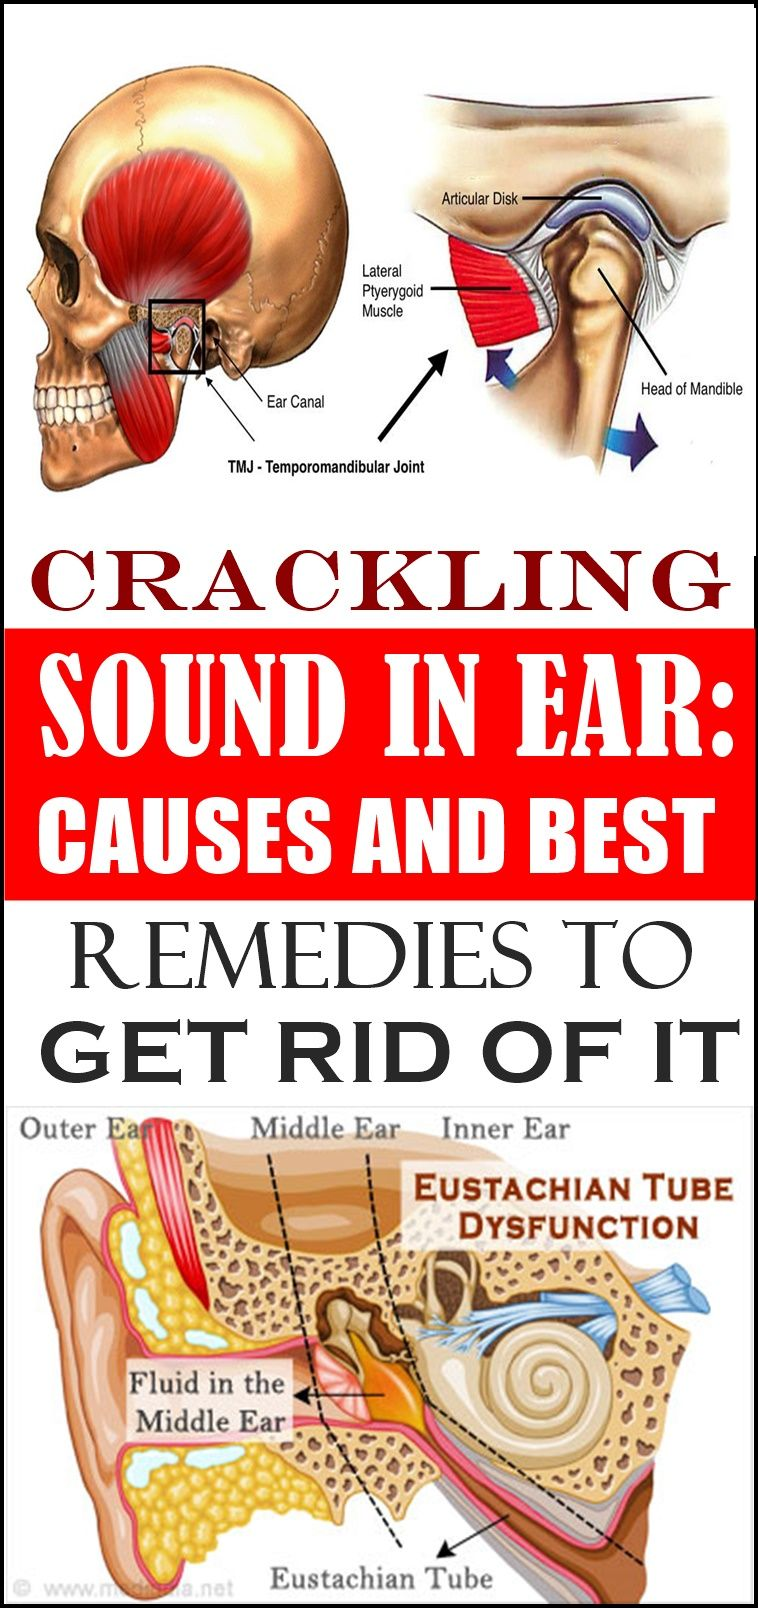 CRACKLING SOUND IN EAR CAUSES AND BEST REMEDIES TO GET